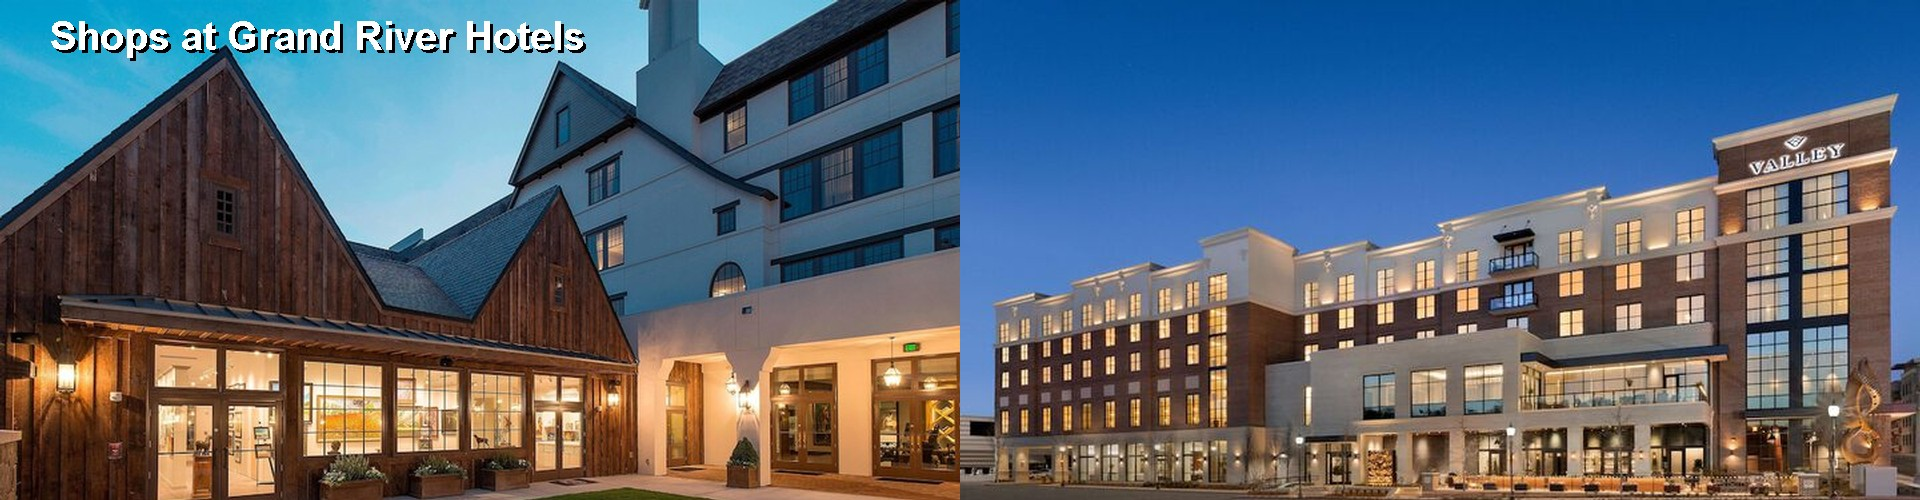 5 Best Hotels near Shops at Grand River